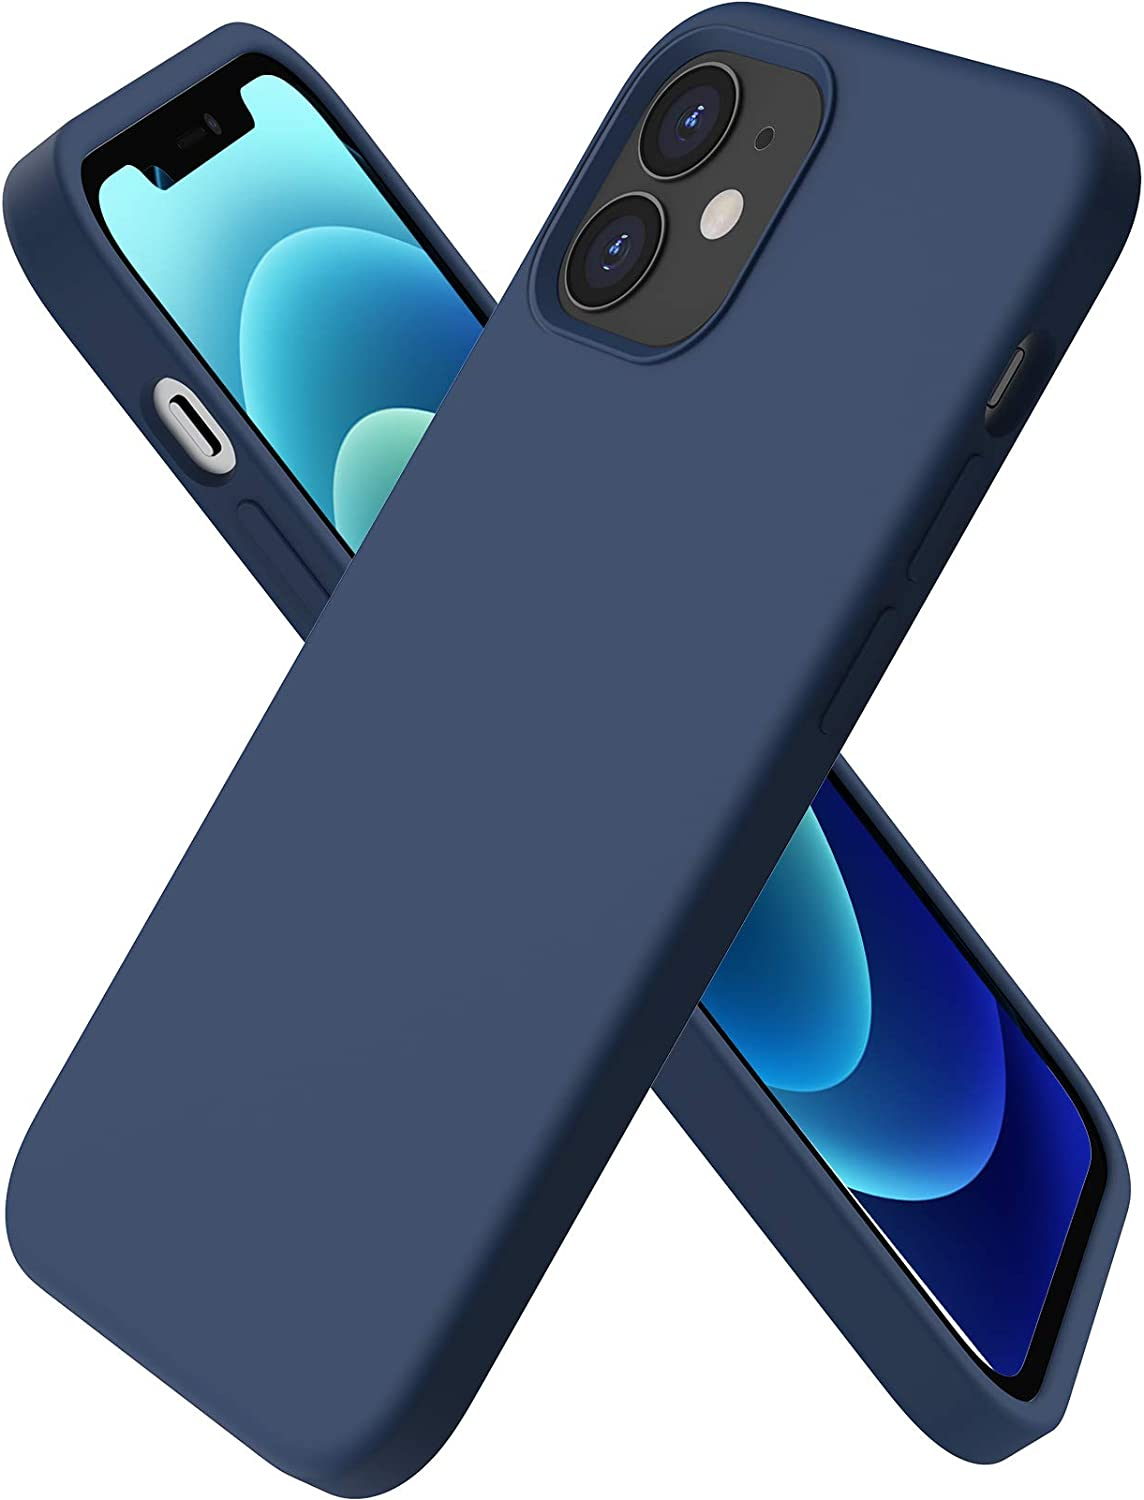 ORNARTO Compatible with iPhone 12 Mini Case, Slim Liquid Silicone 3 Layers Full Covered Soft Gel Rubber with Microfiber Case Cover 5.4 inch-Navy Blue